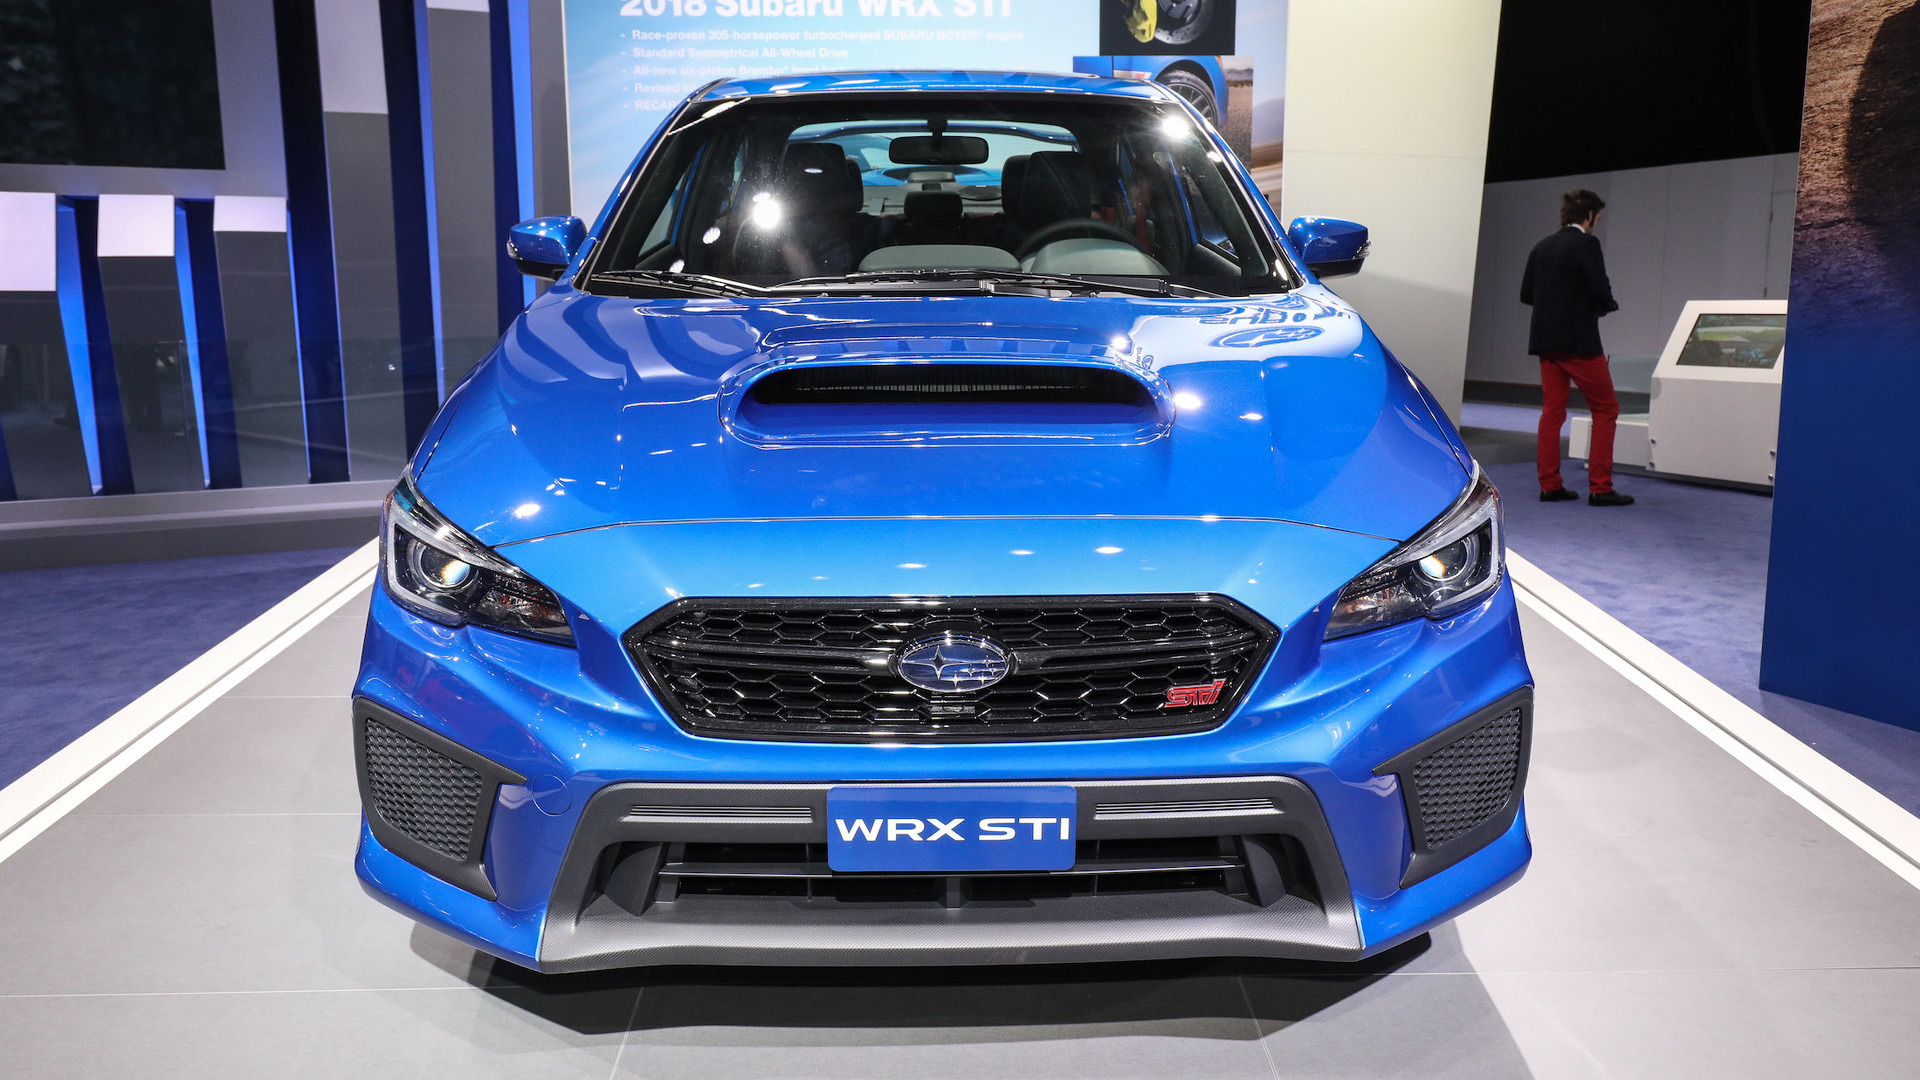 2017 Sti Vs 2018 Your Thoughts